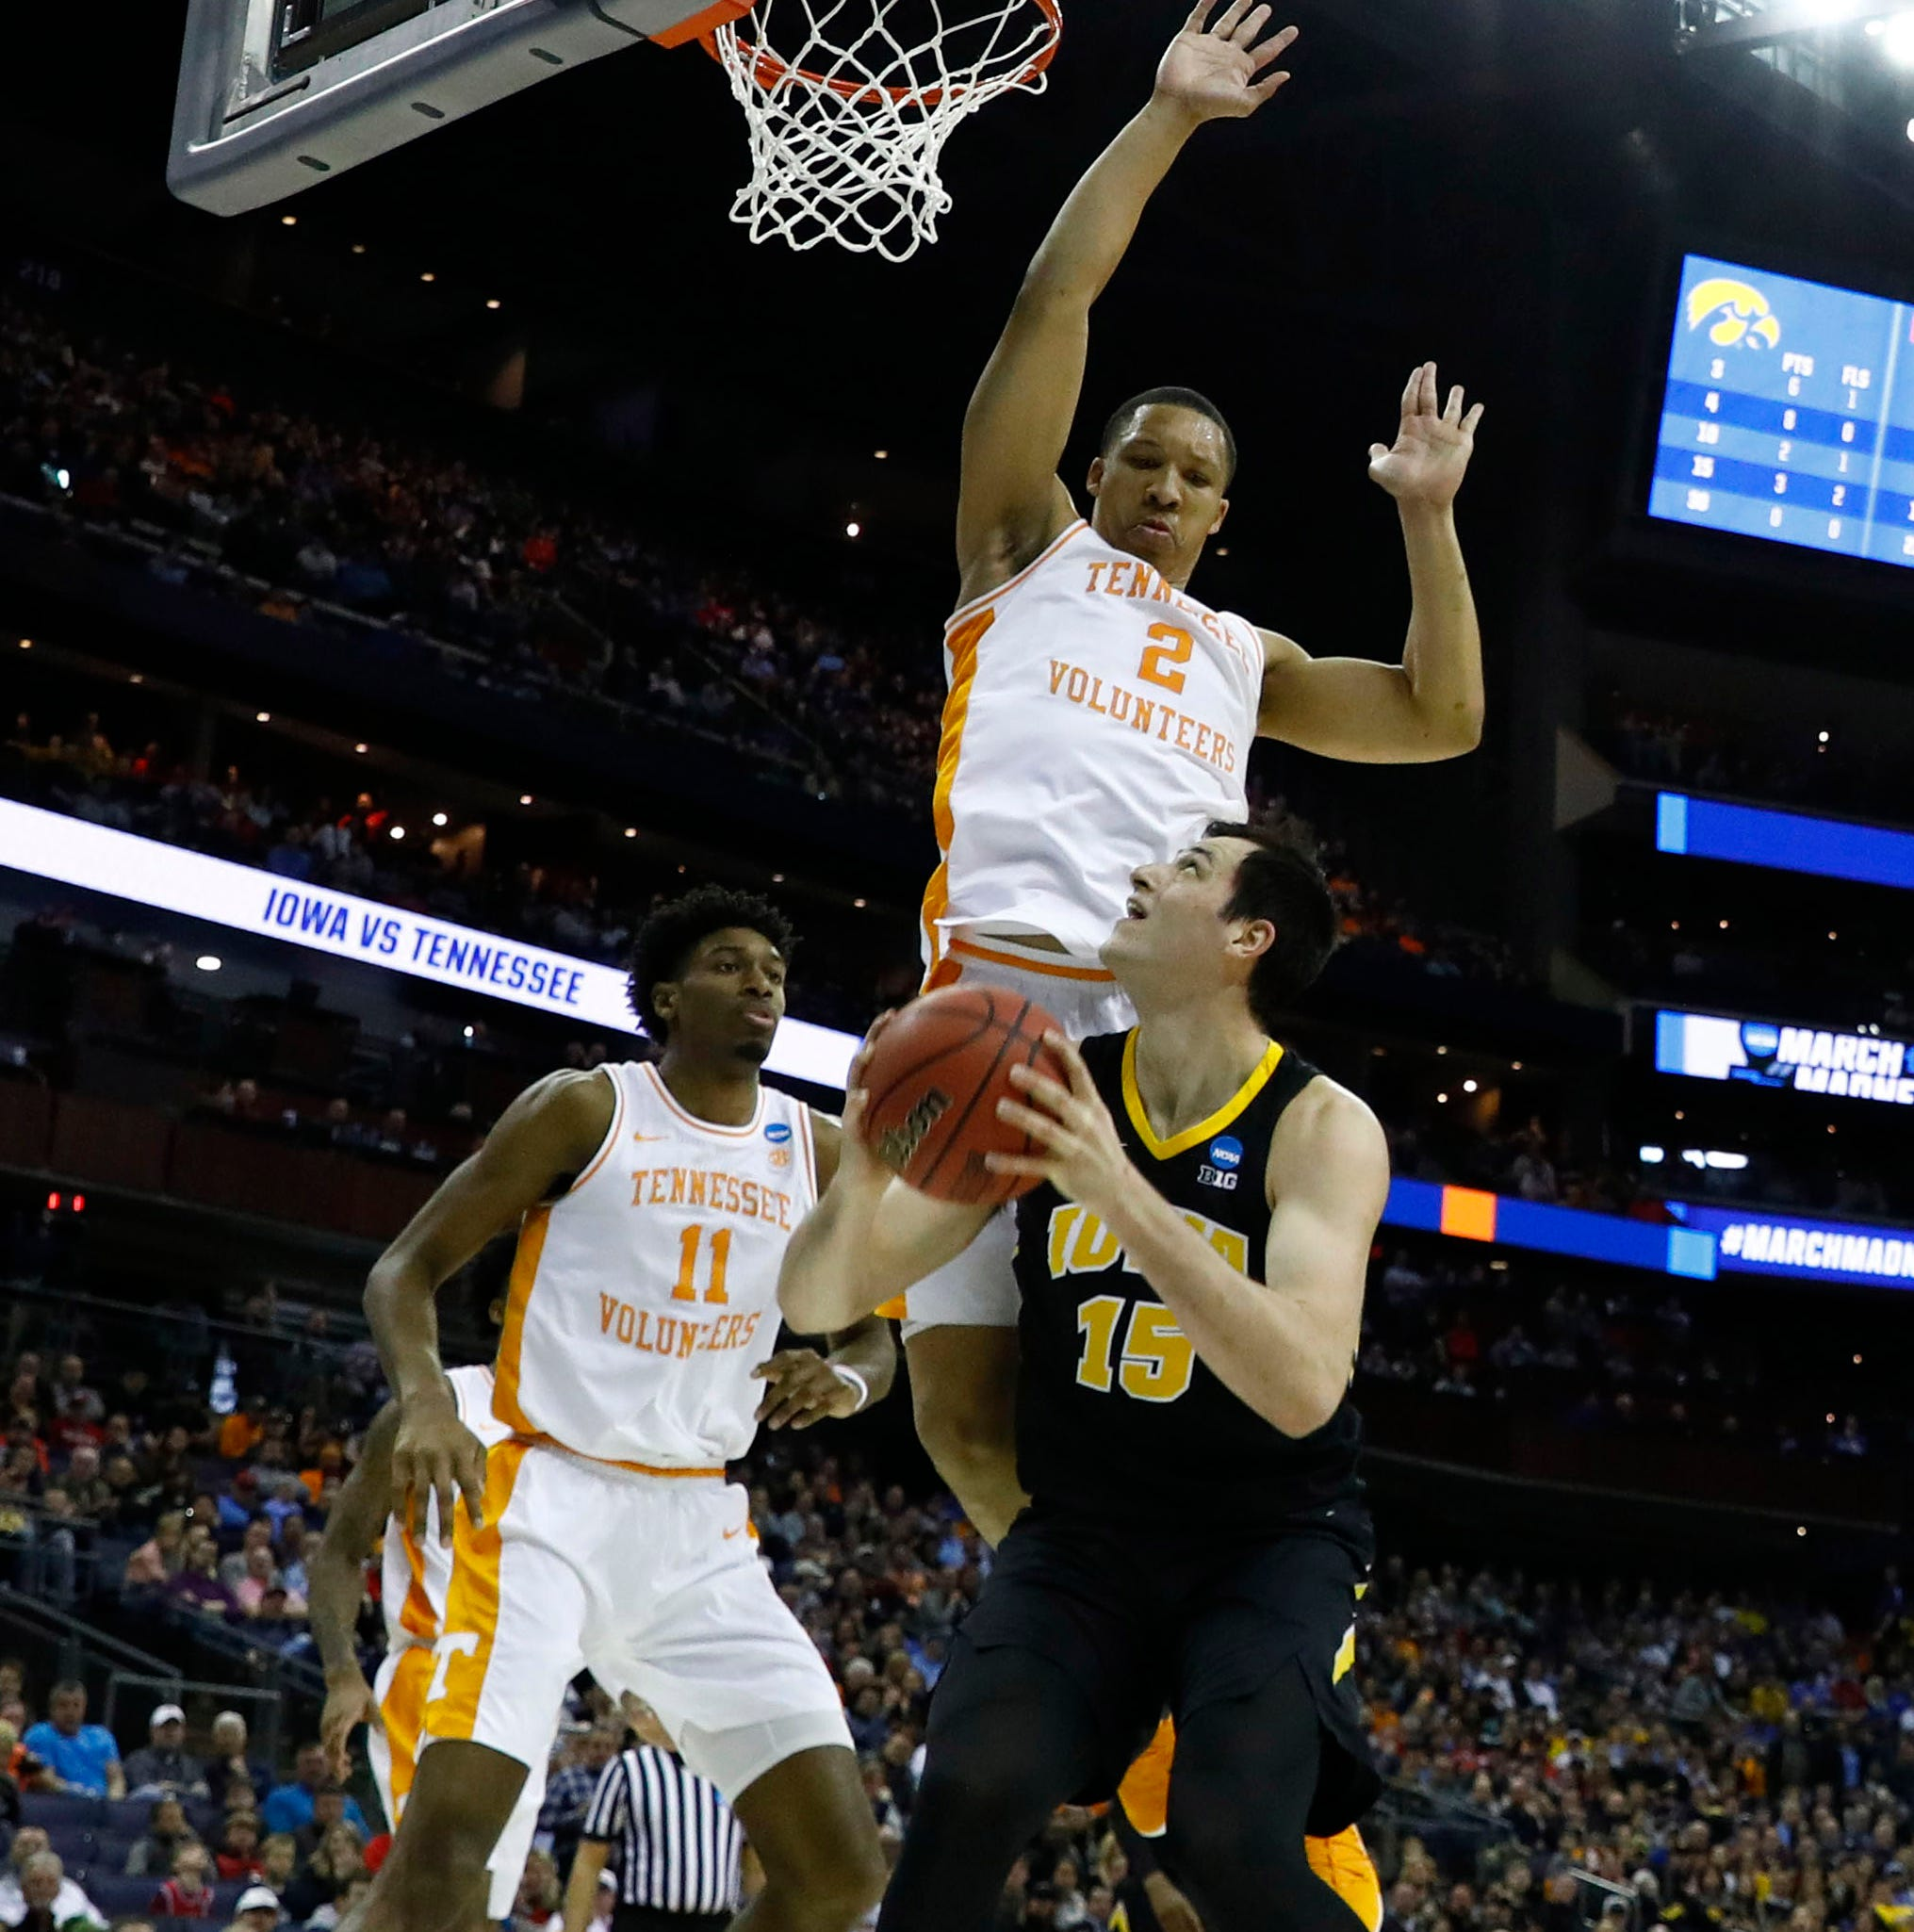 FINAL: Iowa stages furious rally but falls 83-77 in overtime to Tennessee